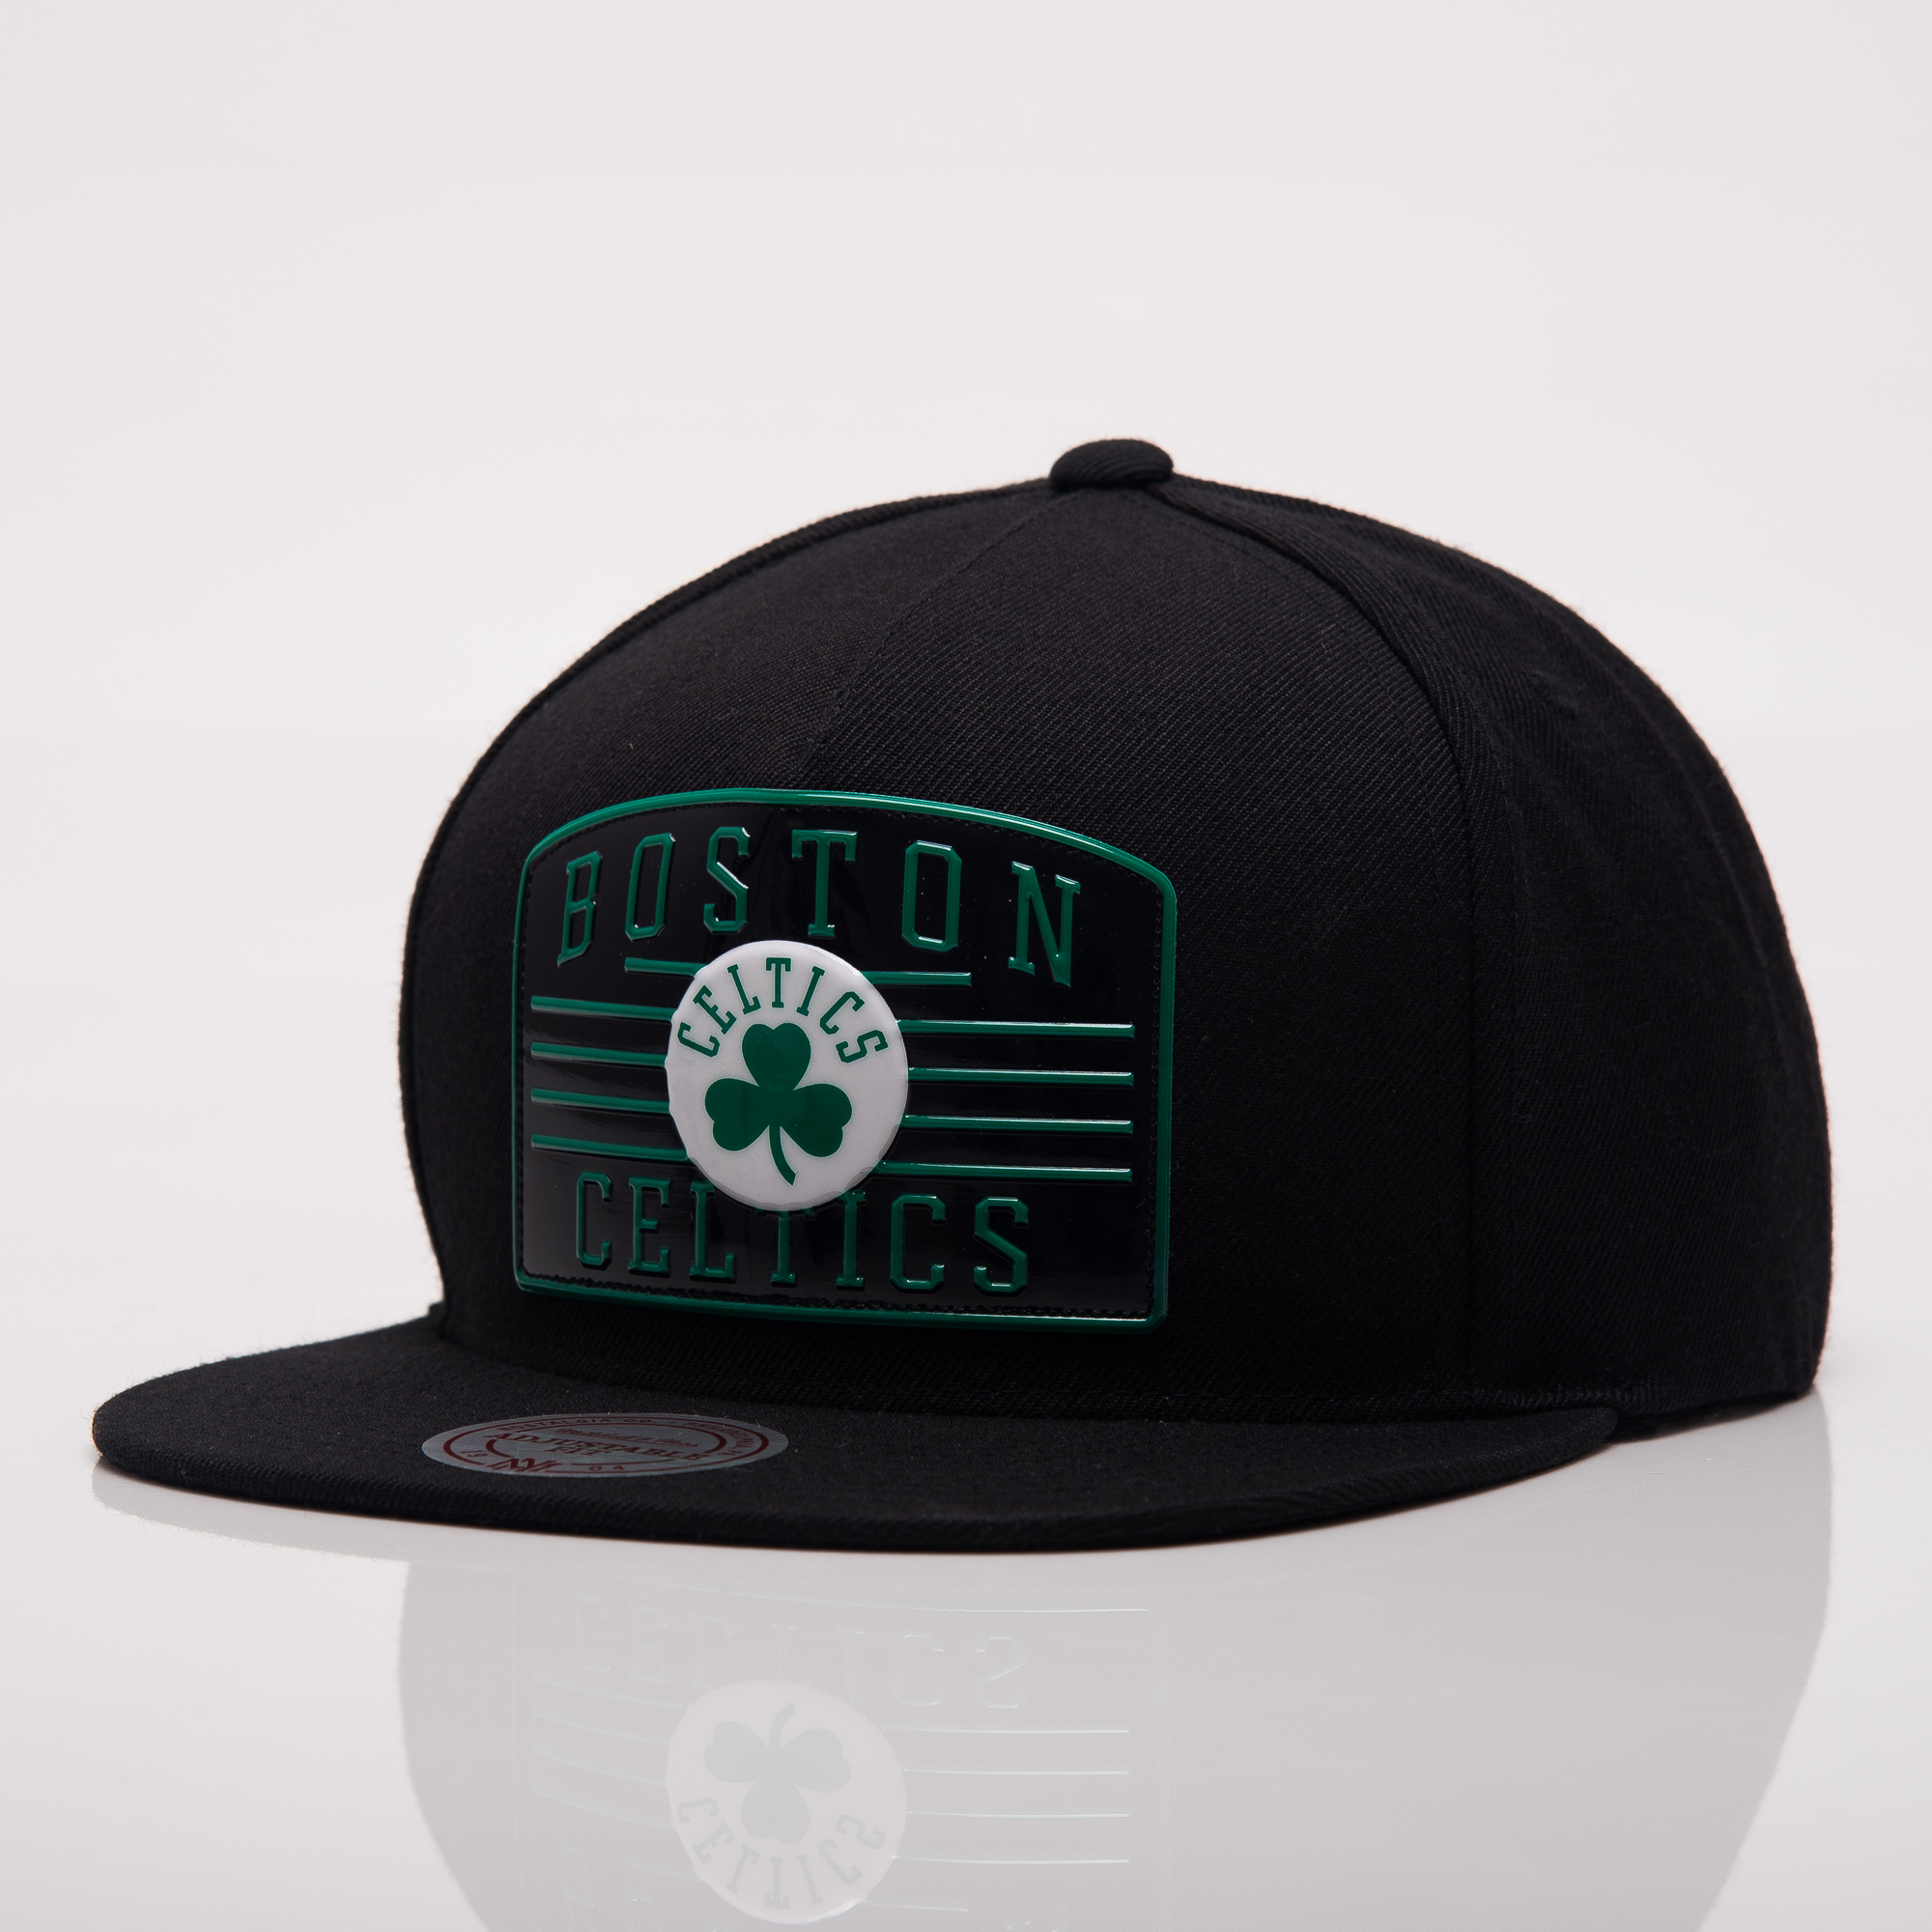 new arrival ed940 61081 Mitchell Ness NBA Boston Celtics Weald Patch Snapback Cap ...